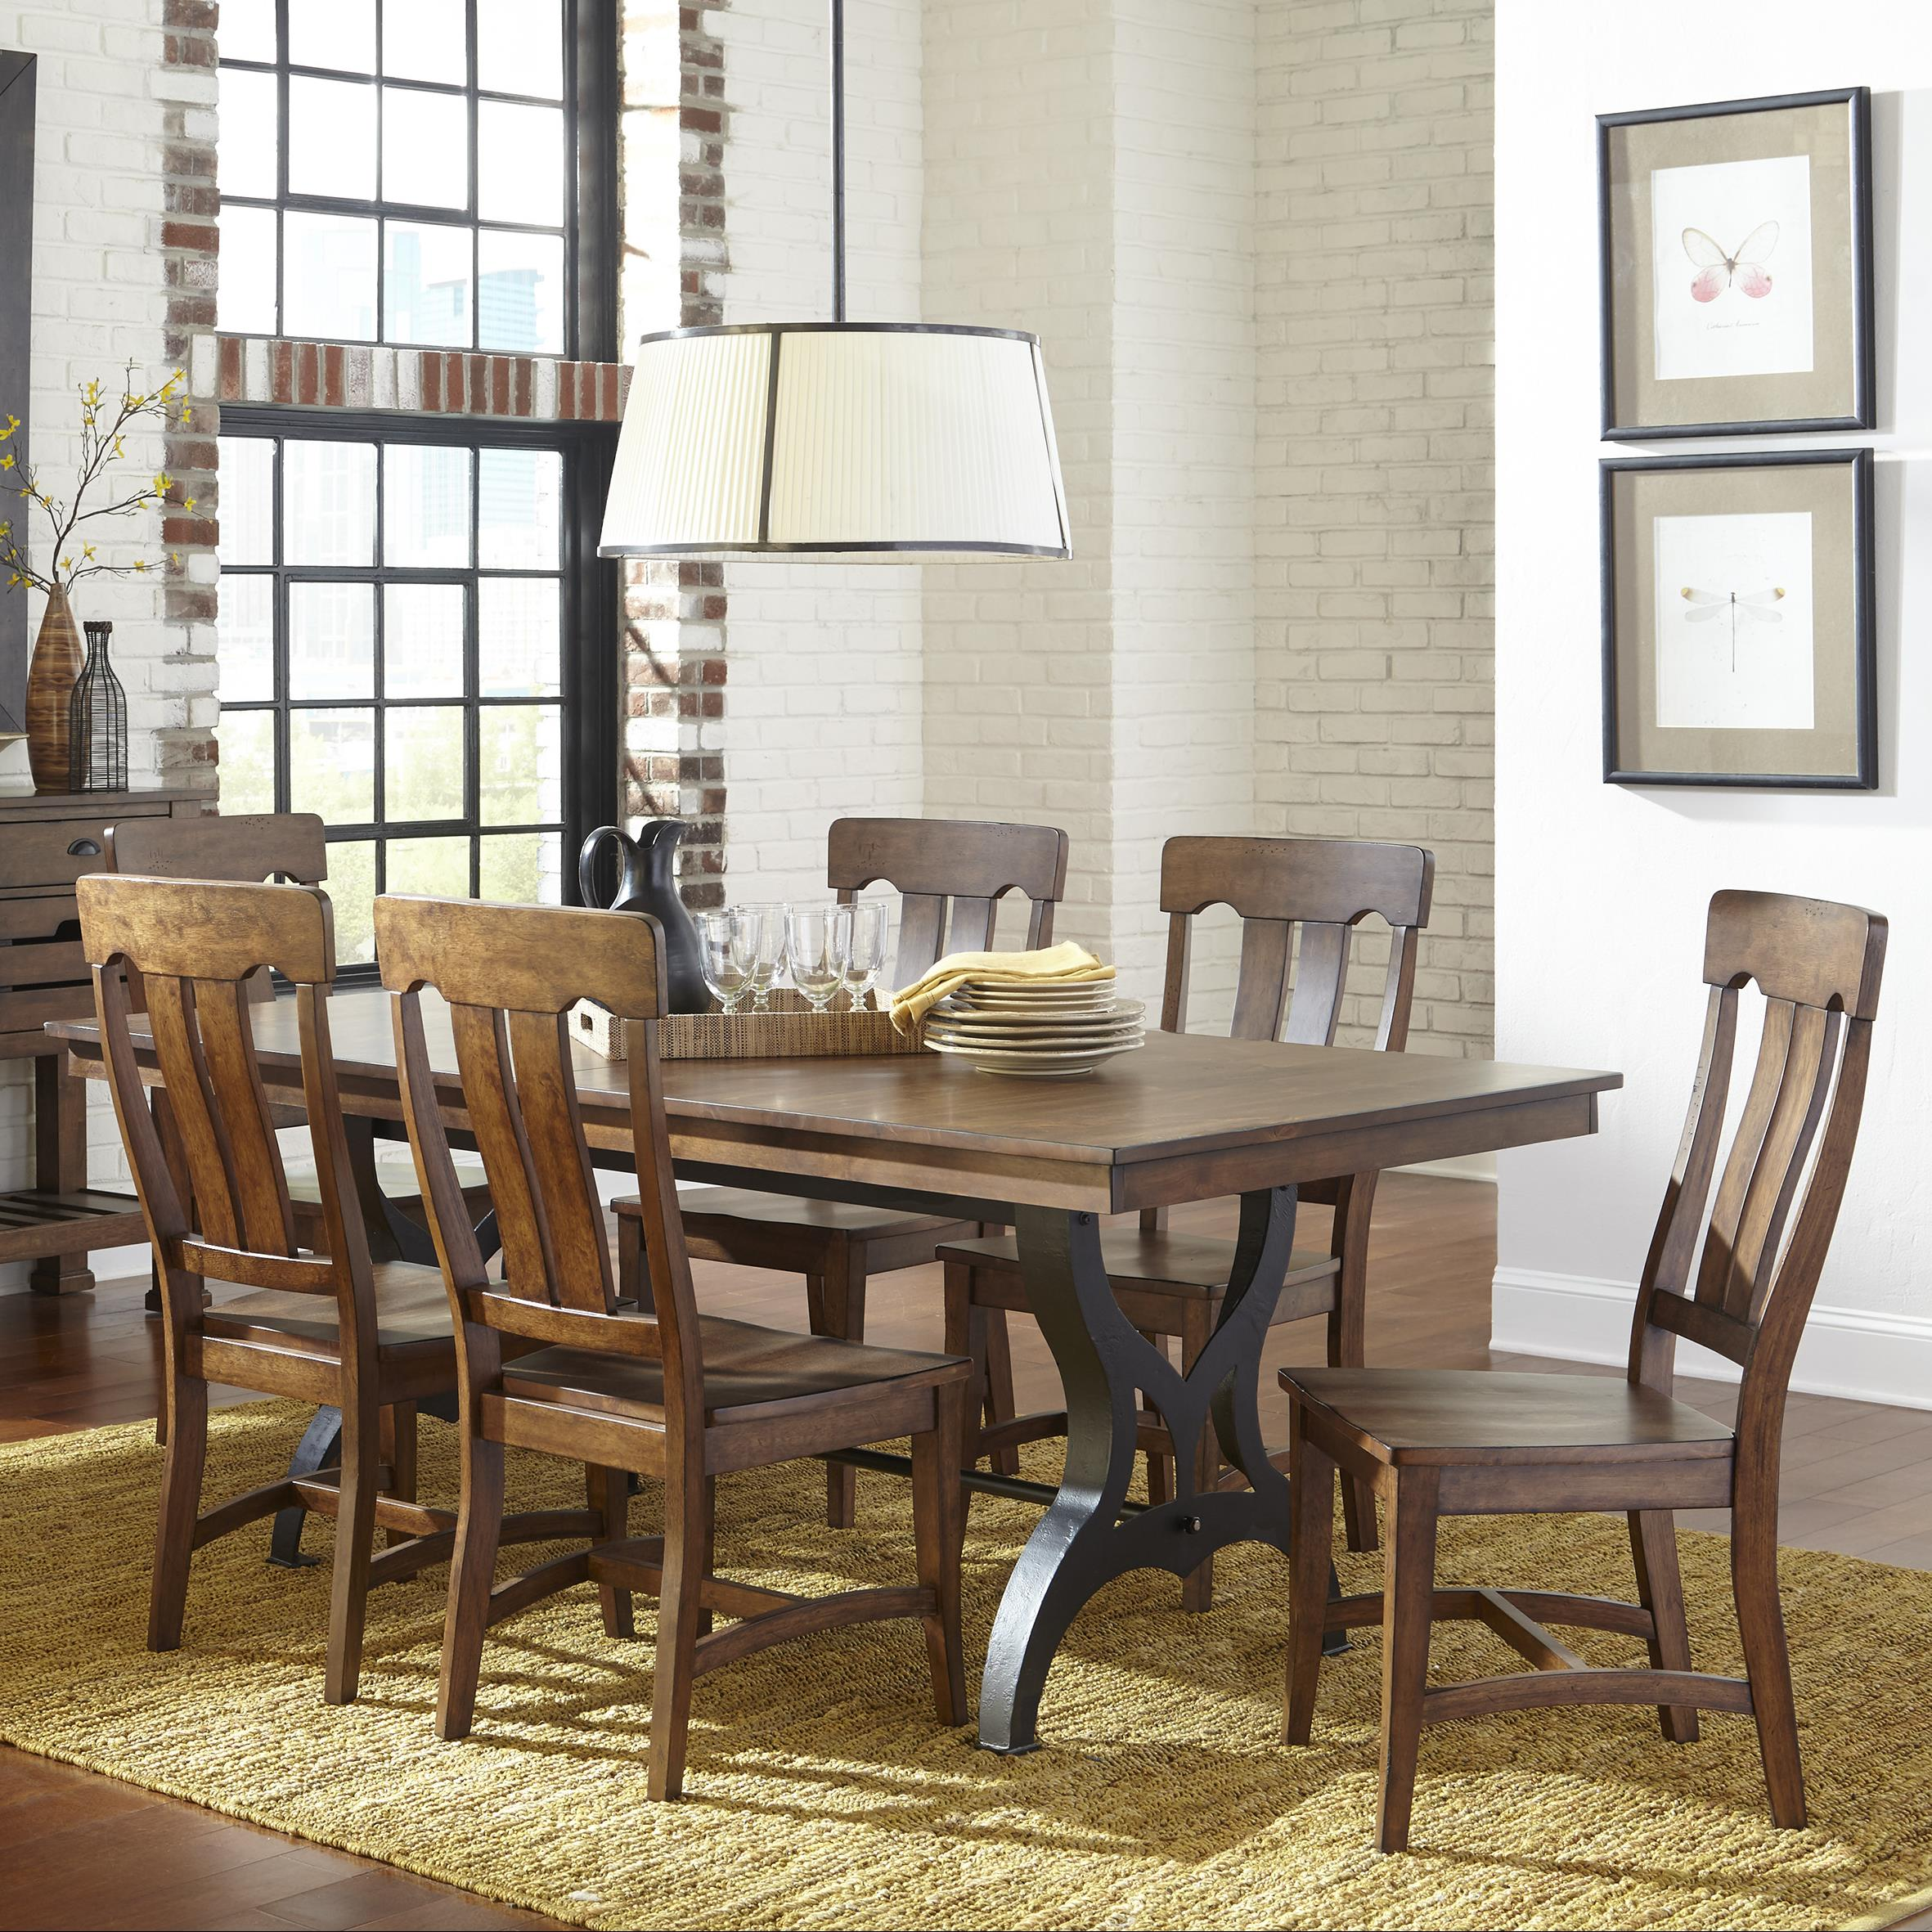 The District 7 Piece Table & Chair Set by Intercon at Darvin Furniture